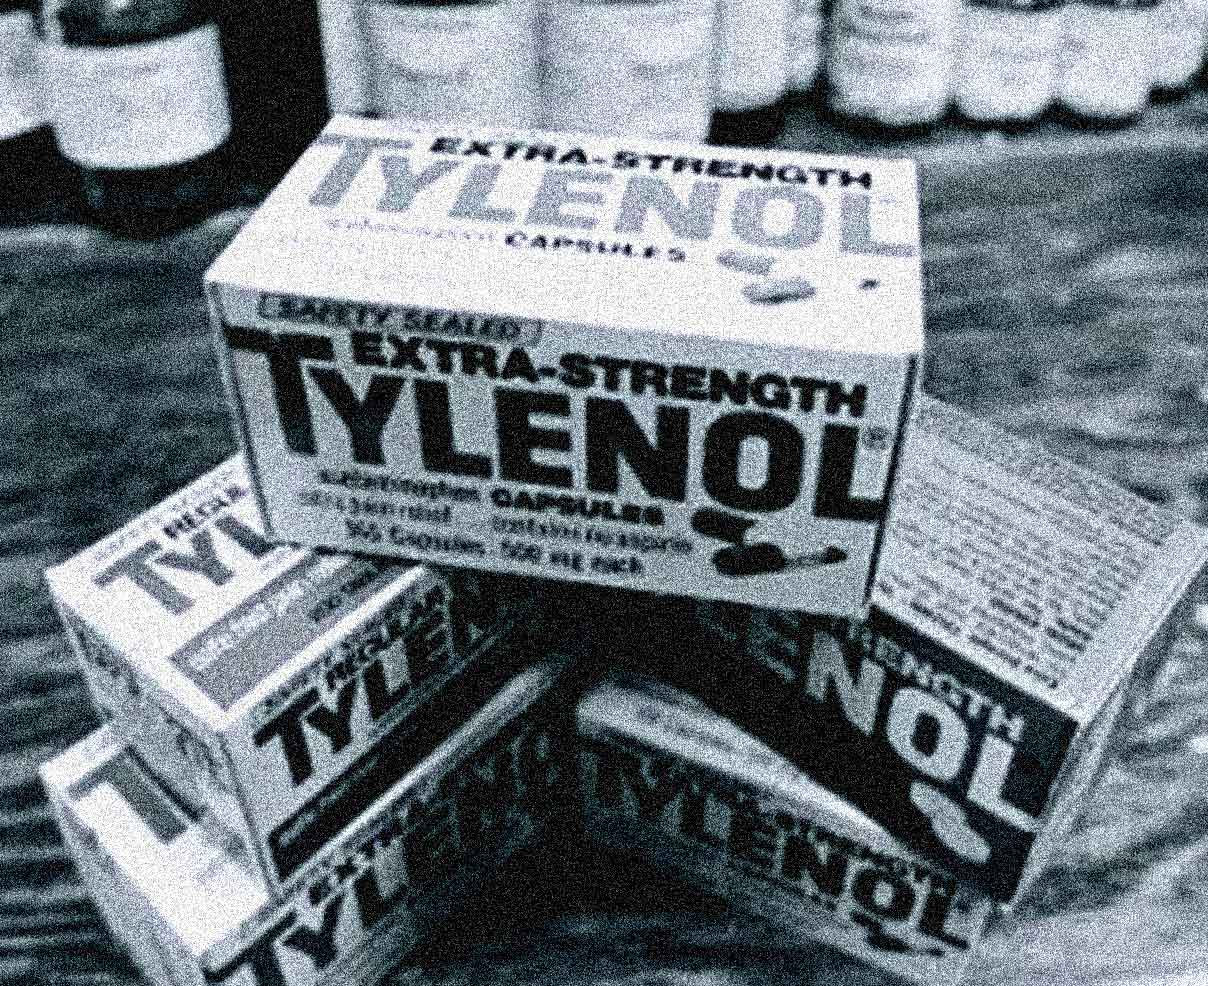 Tylenol Advert, 1970s